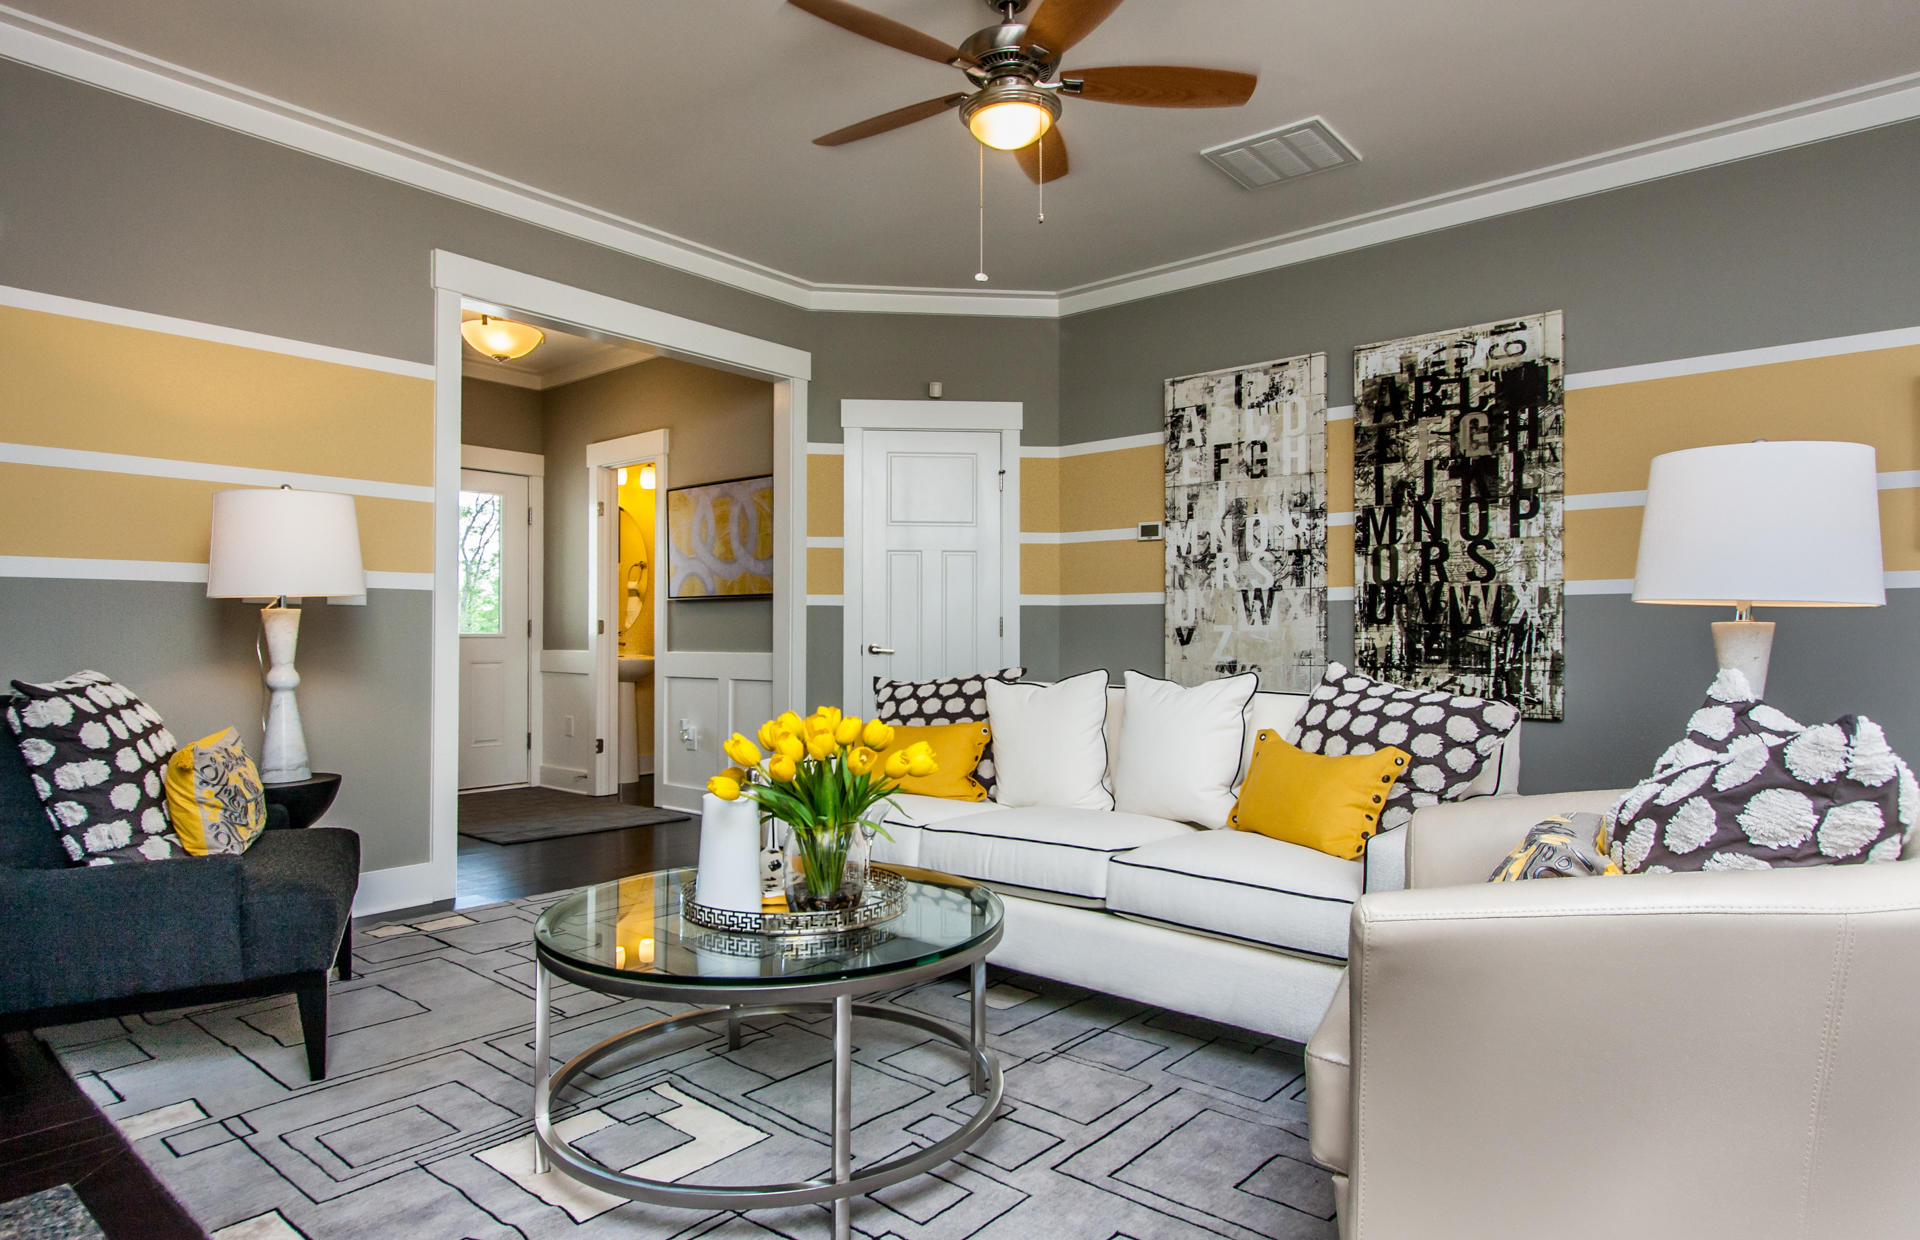 Southpoint Townes by Pulte Homes image 1